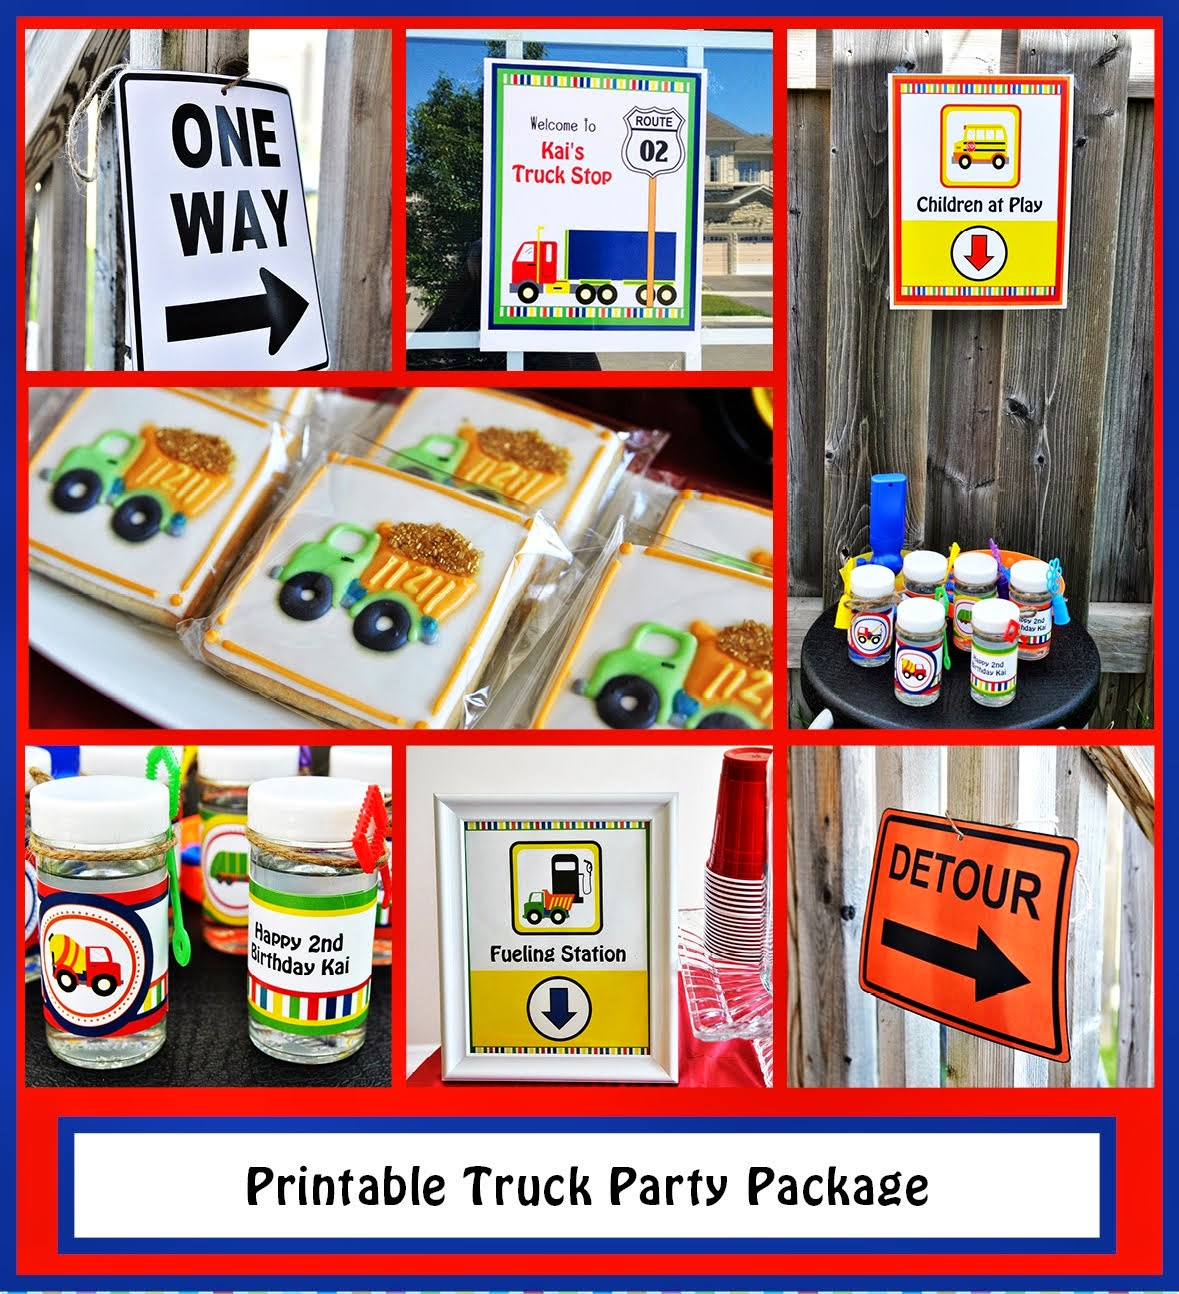 Printable Truck Party Package